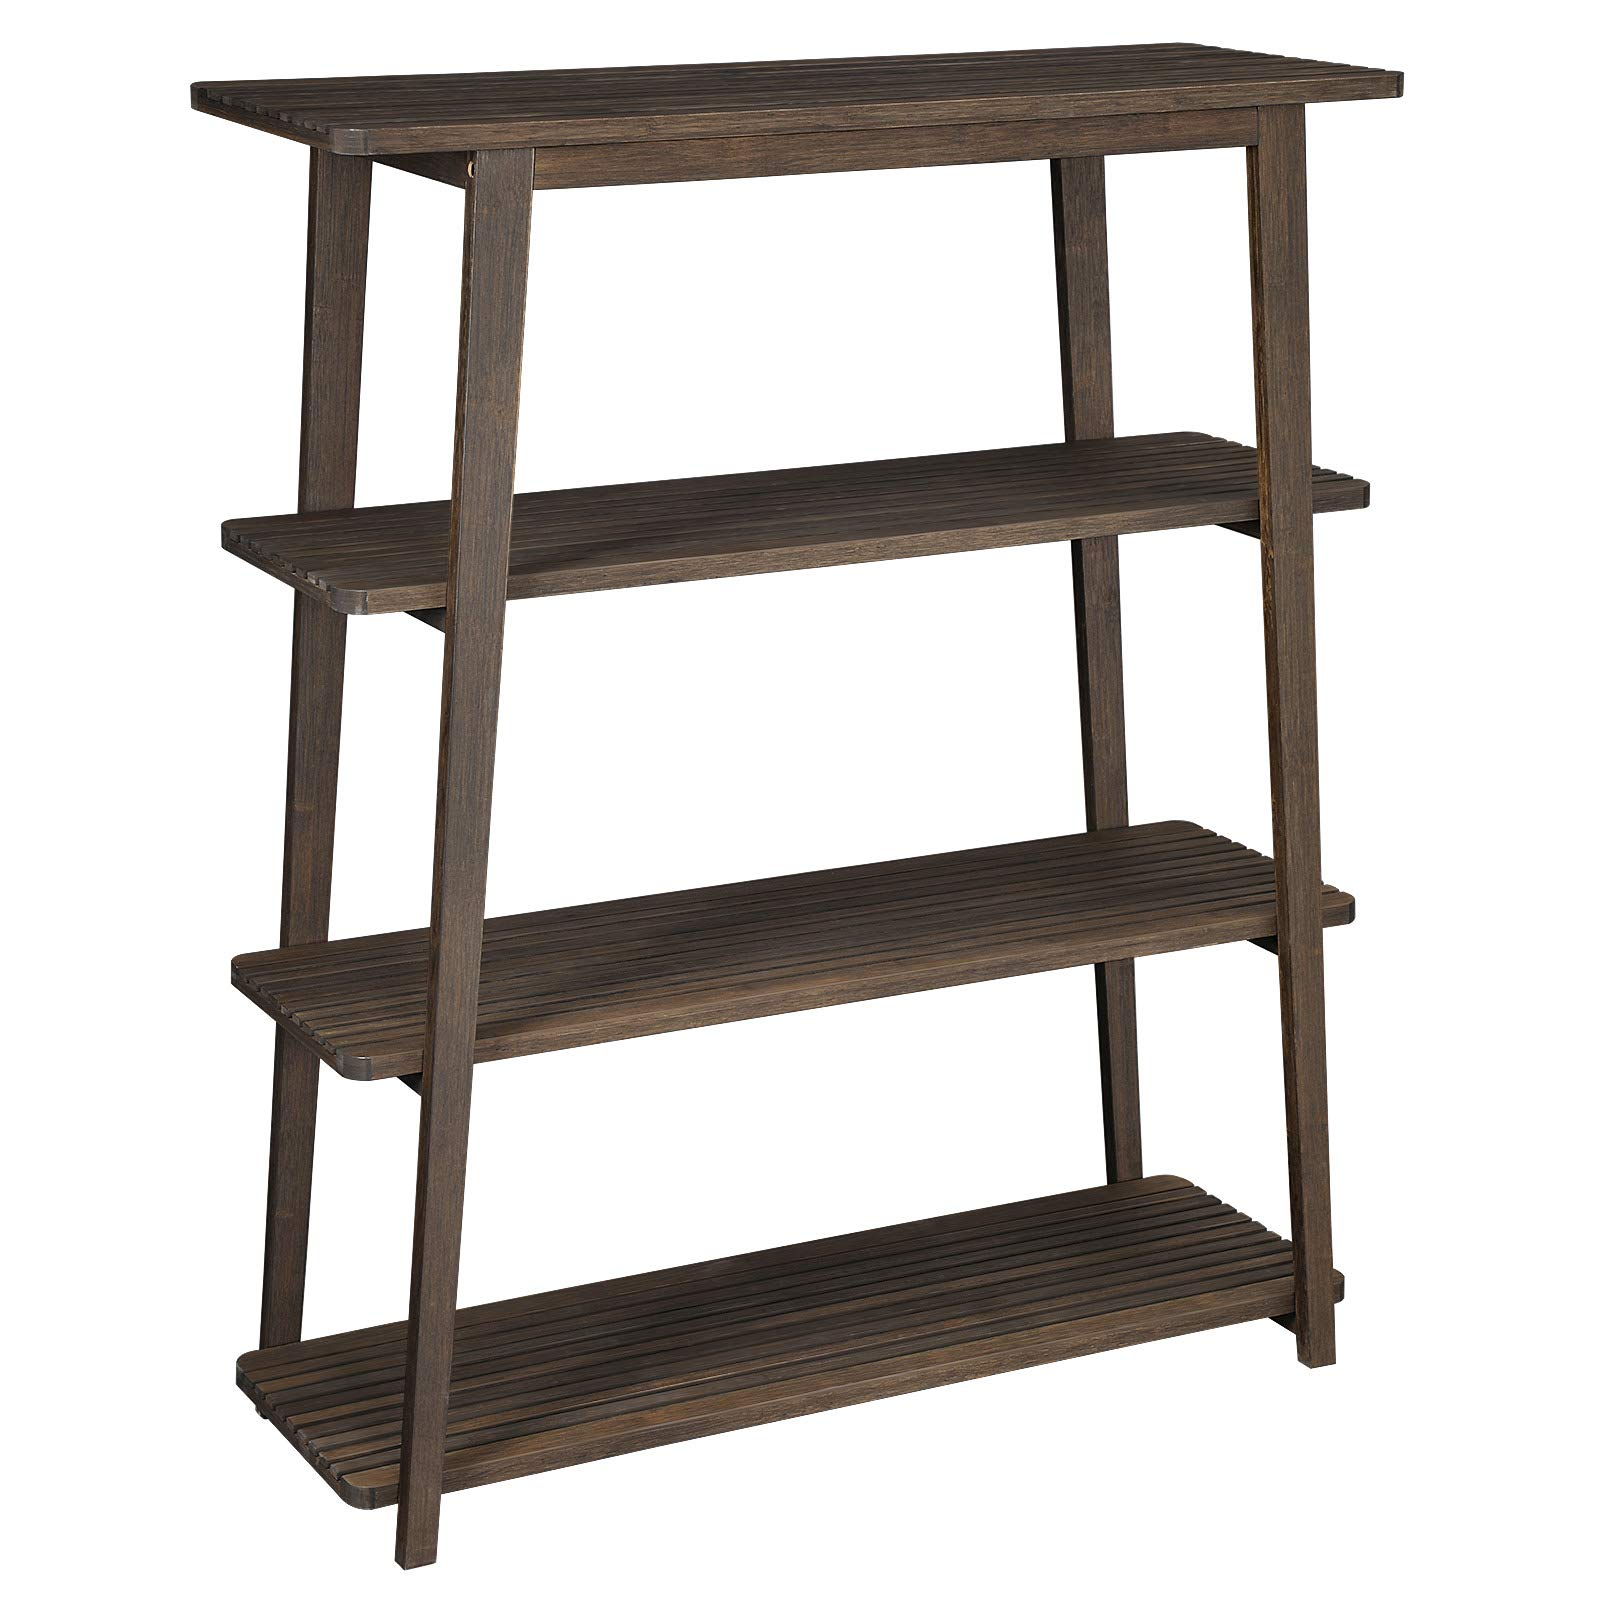 VASAGLE Bamboo Storage Rack, 4-Tier Bookcase with Cutout Design, Stable Plant Stand, Shelving Unit for Living Room Study Balcony, Tower Design, 39.4 x 14.4 x 47.2 Inches, Walnut Color ULUS100WN by VASAGLE